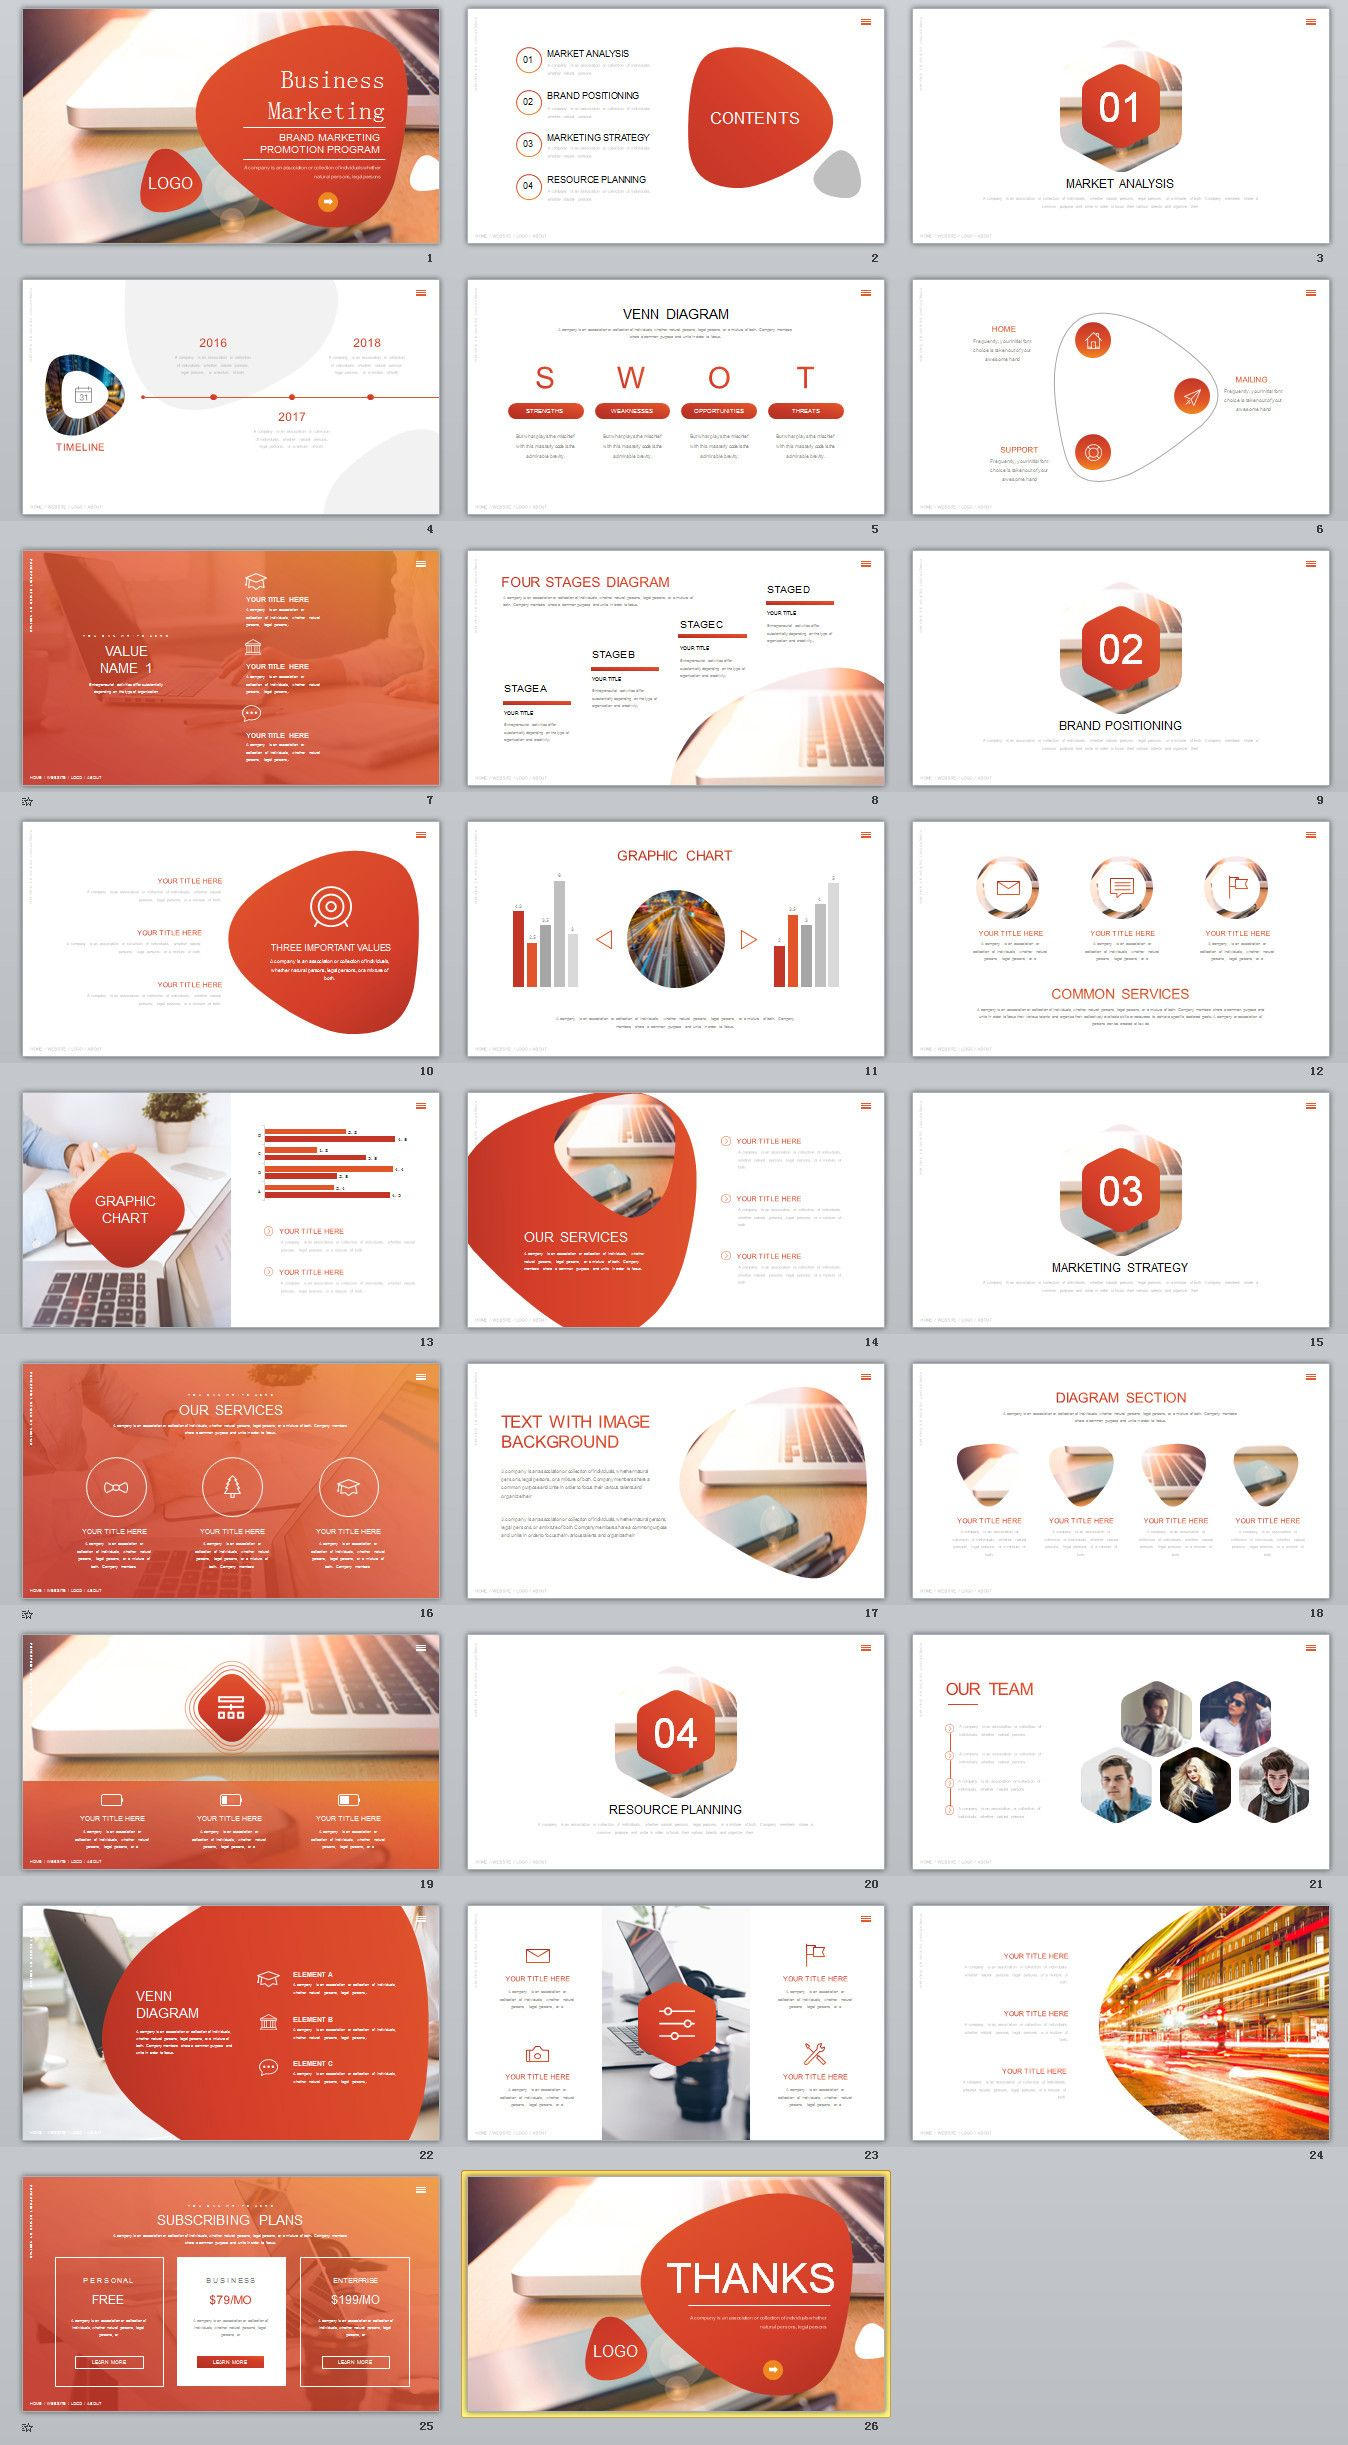 26 business marketing analysis powerpoint template powerpoint 26 business marketing analysis powerpoint template powerpoint templates presentation animation toneelgroepblik